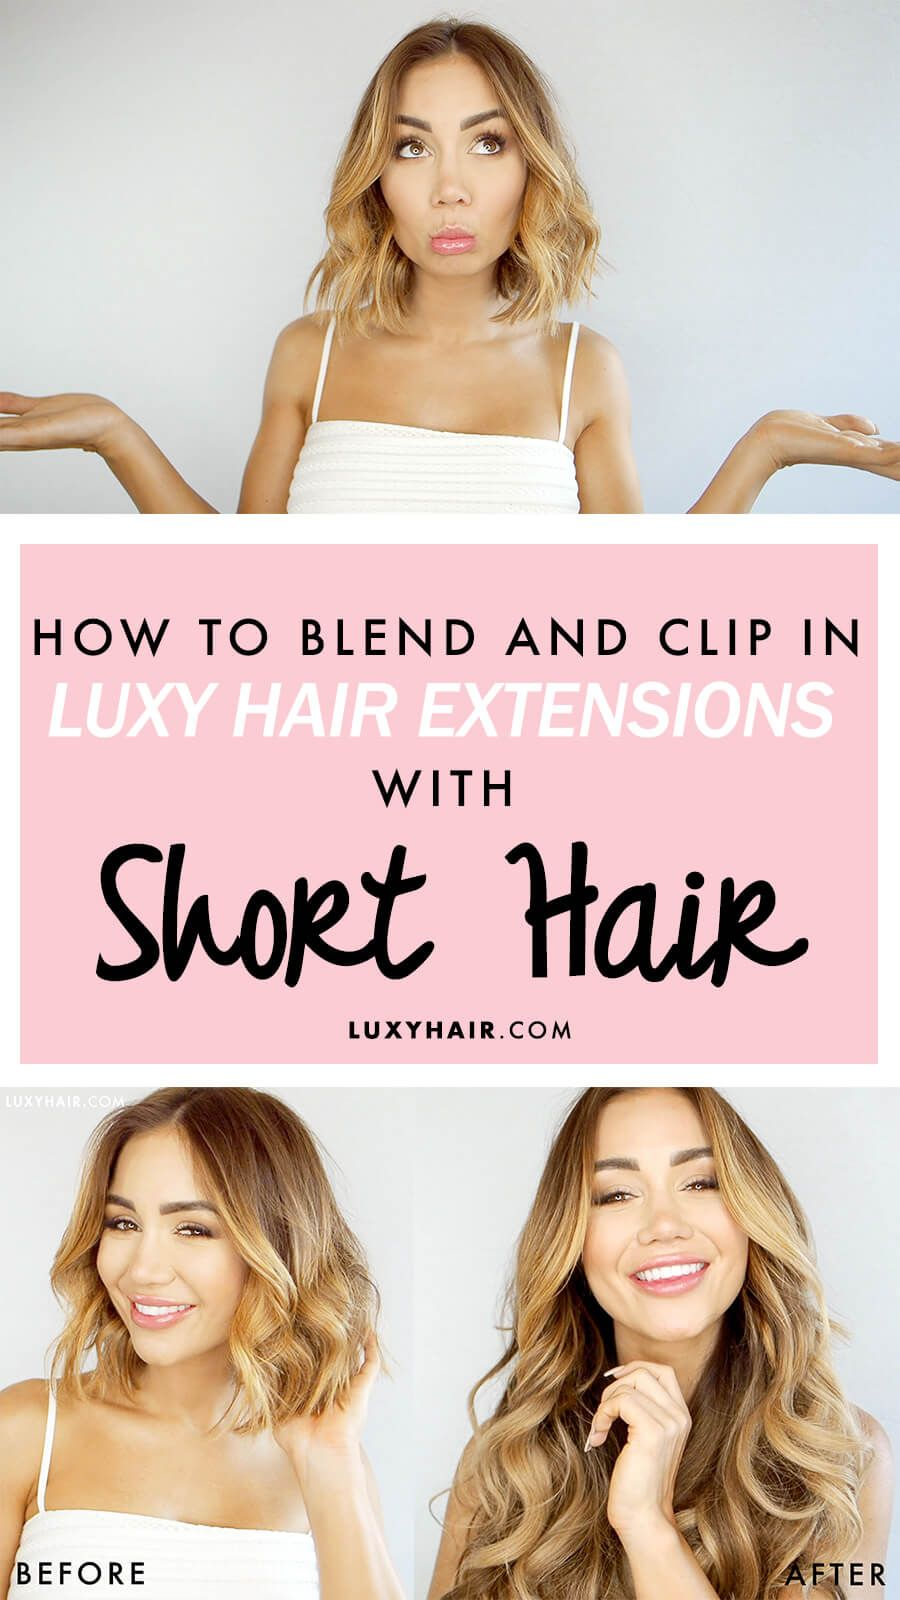 How To Blend And Clip In Hair Extensions With Short Hair Hair